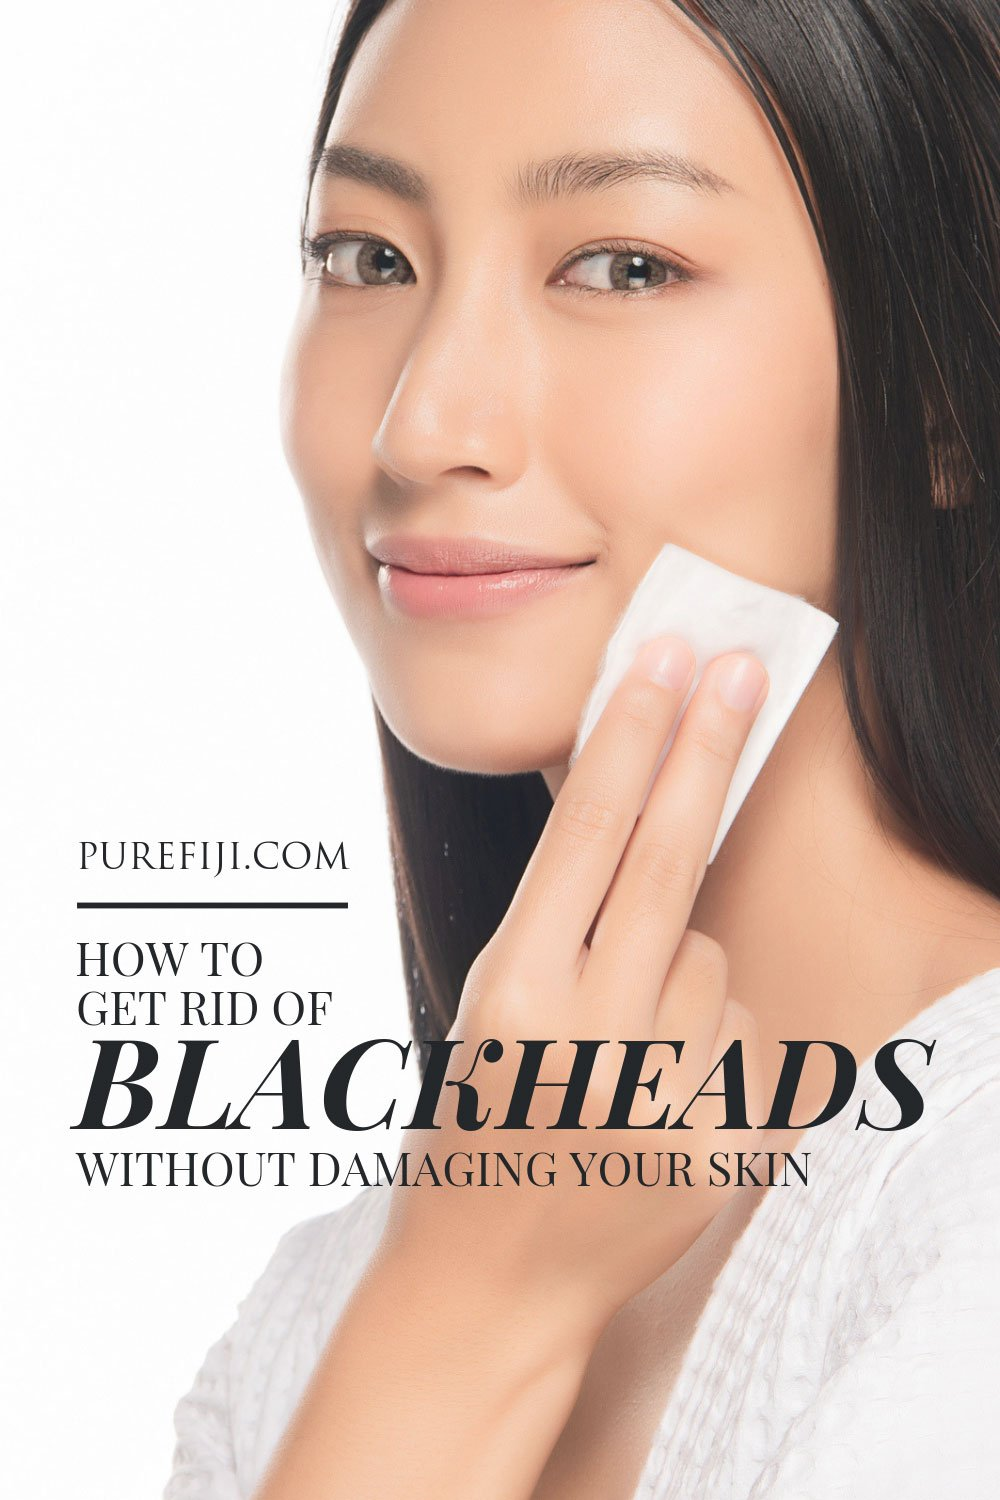 How to Get Rid of Blackheads Without Damaging Your Skin